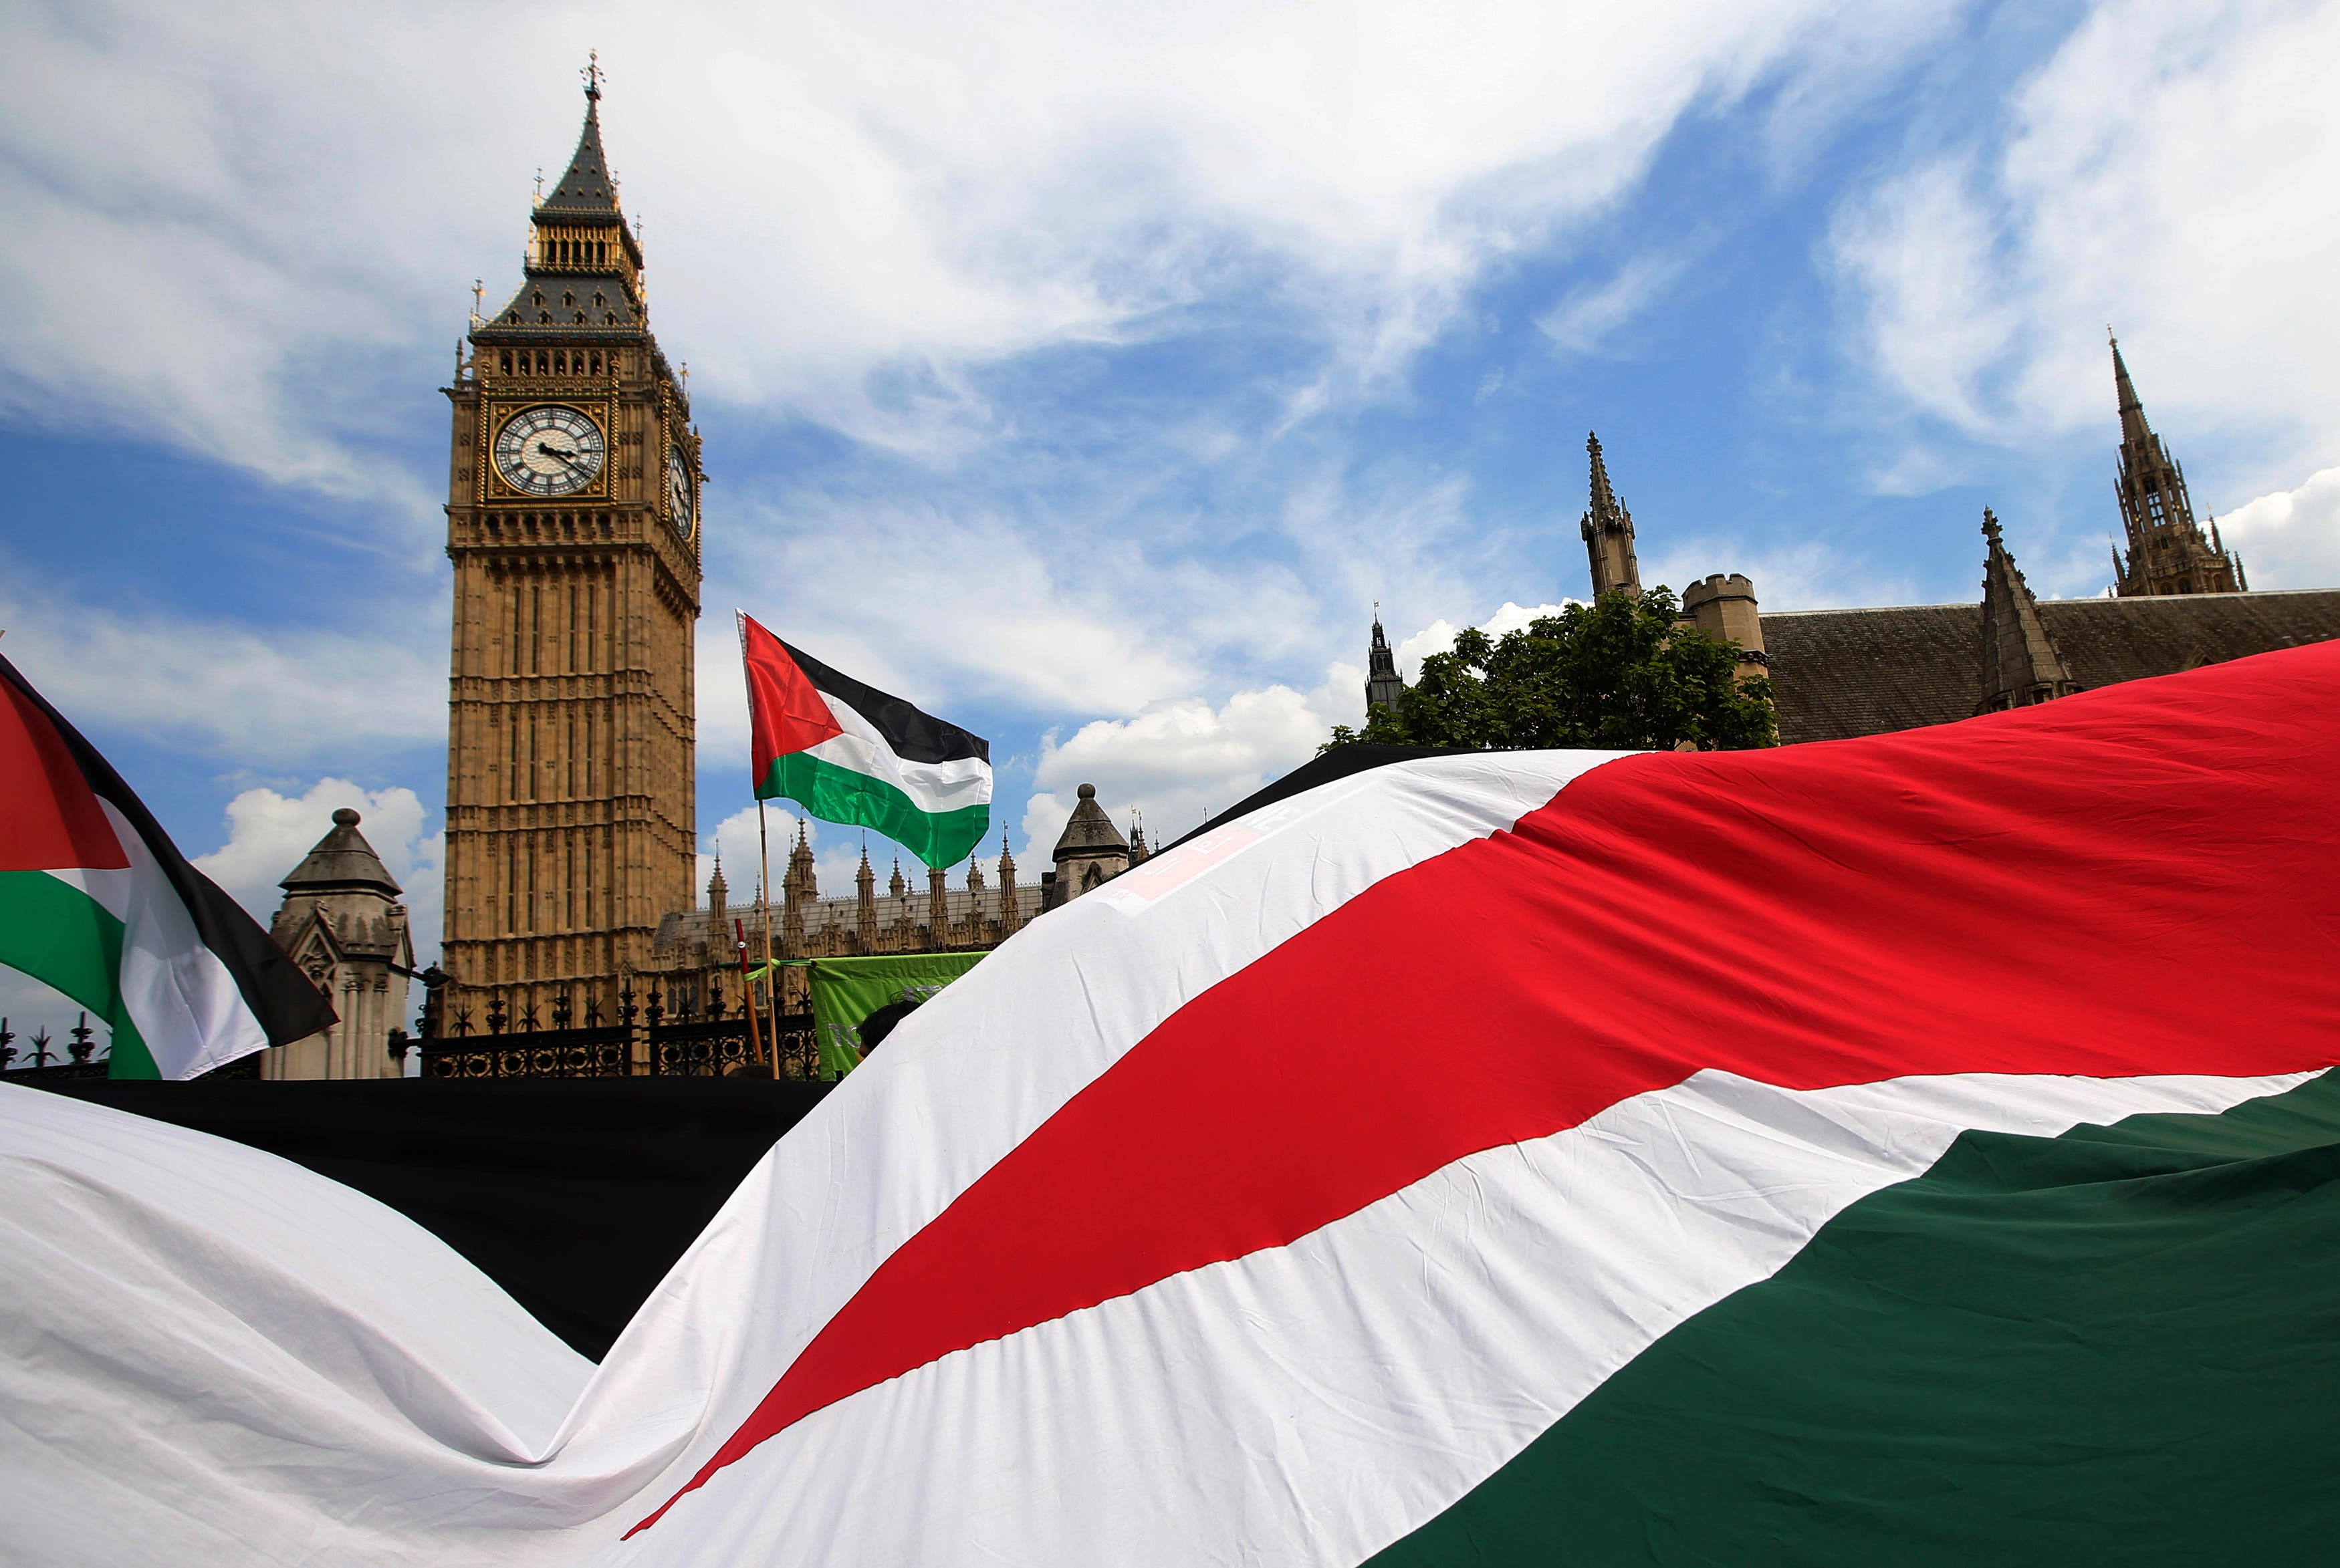 Demonstrators carry Palestinian flags as they protest outside the Houses of Parliament in central London July 26, 2014. (Reuters)